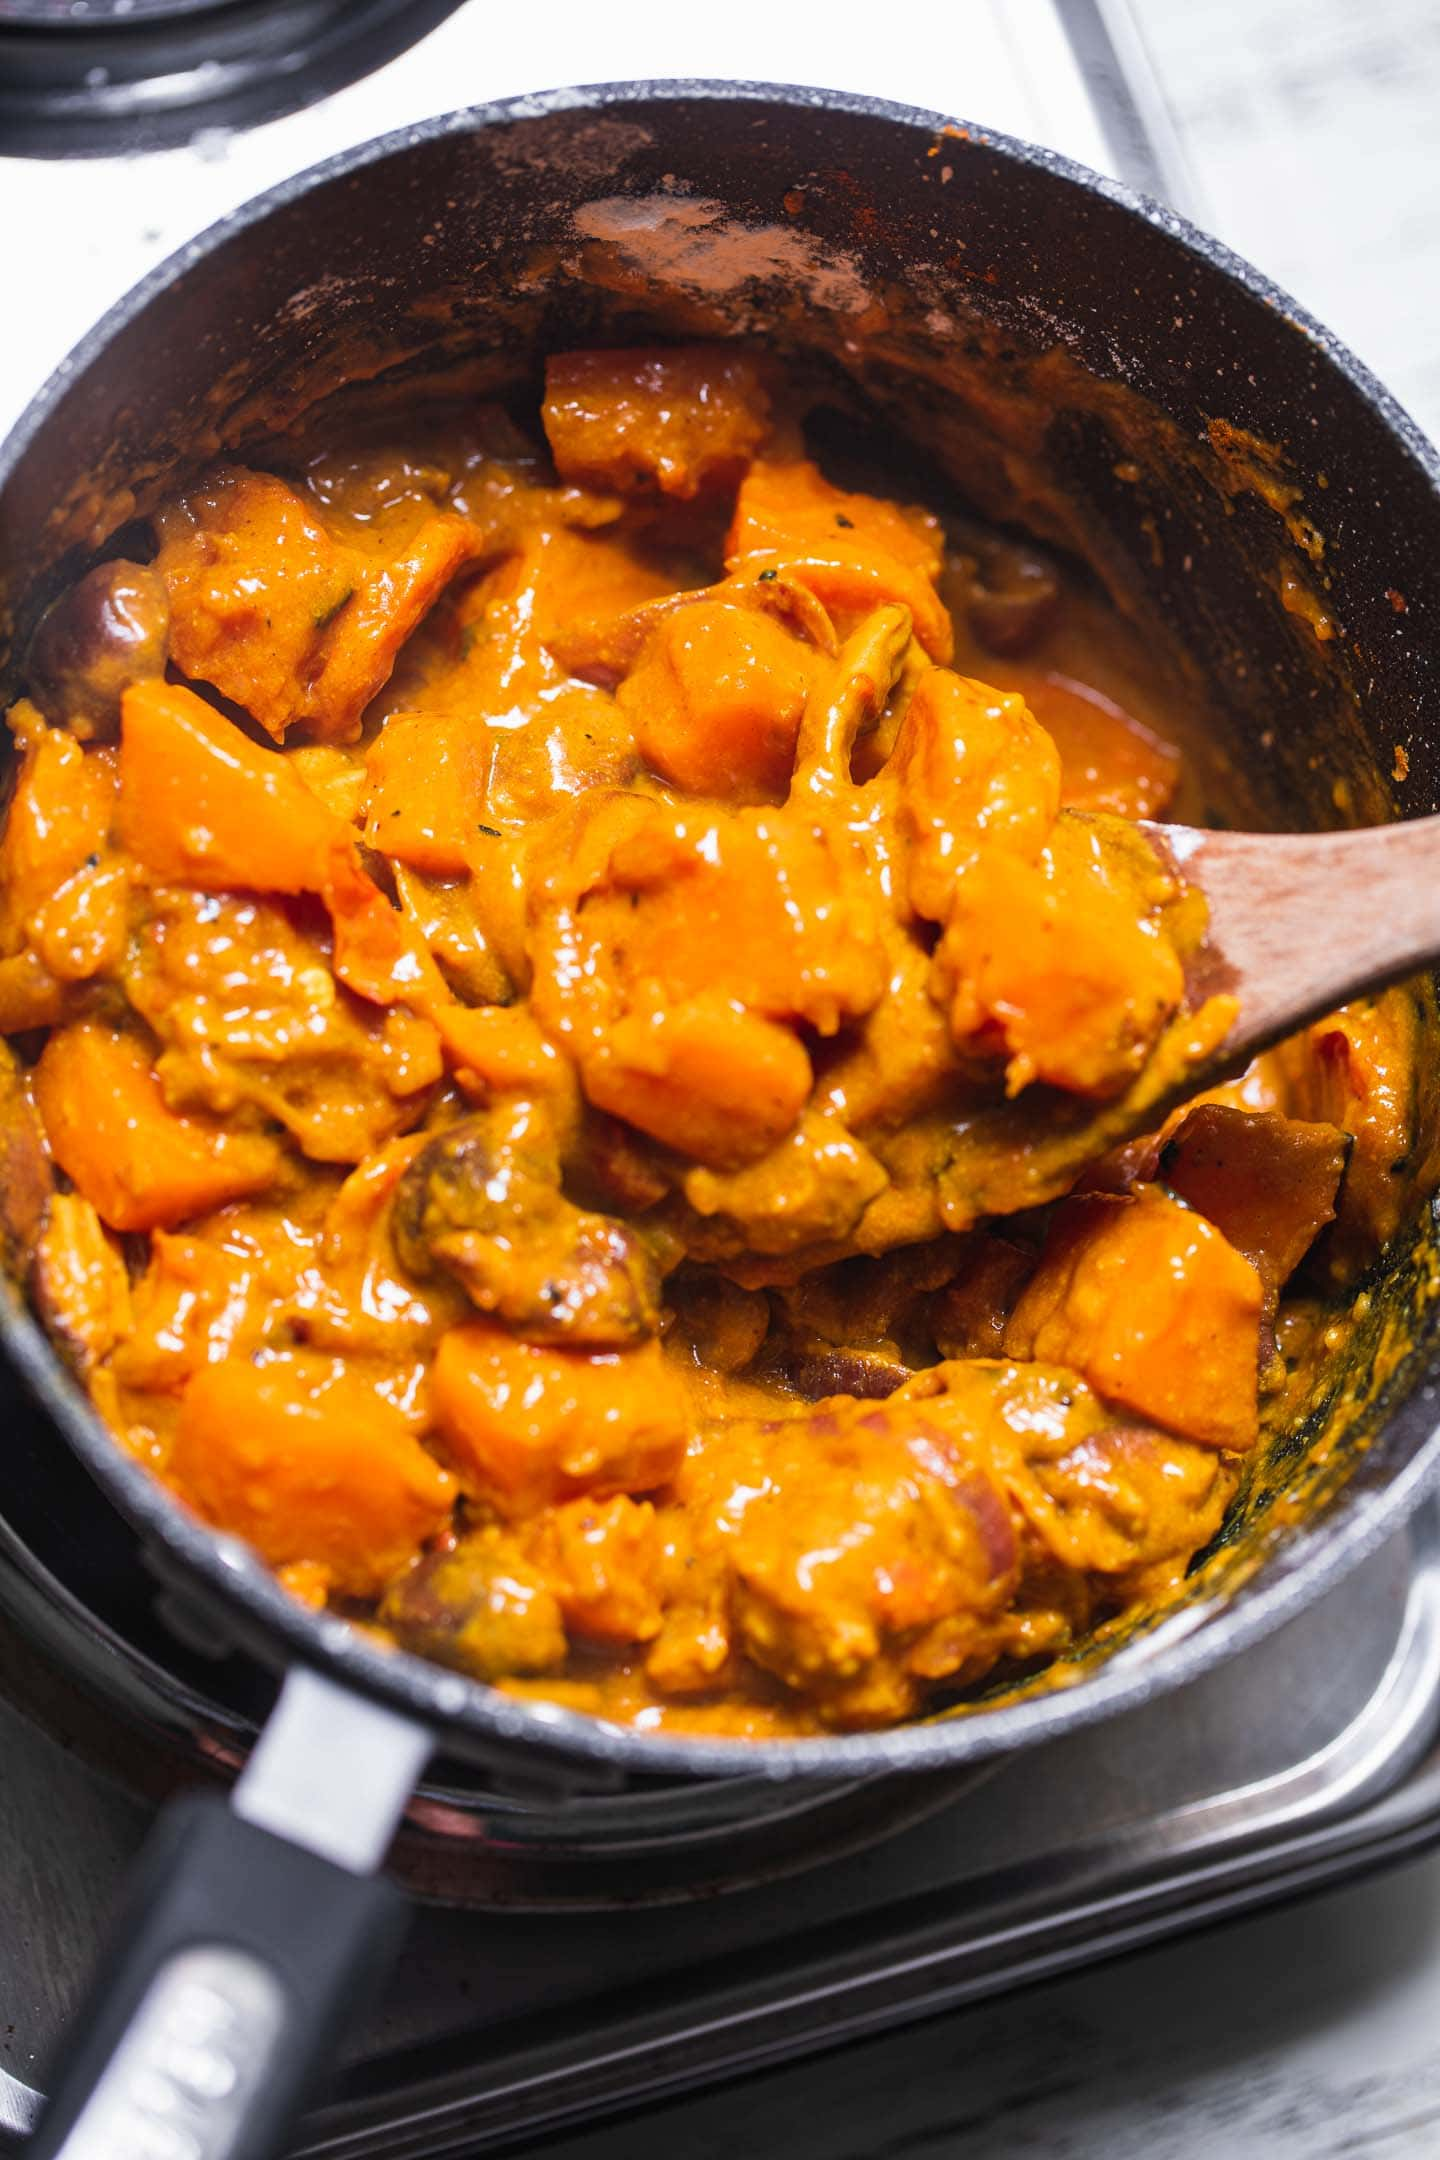 Butternut squash pot pie filling in a saucepan